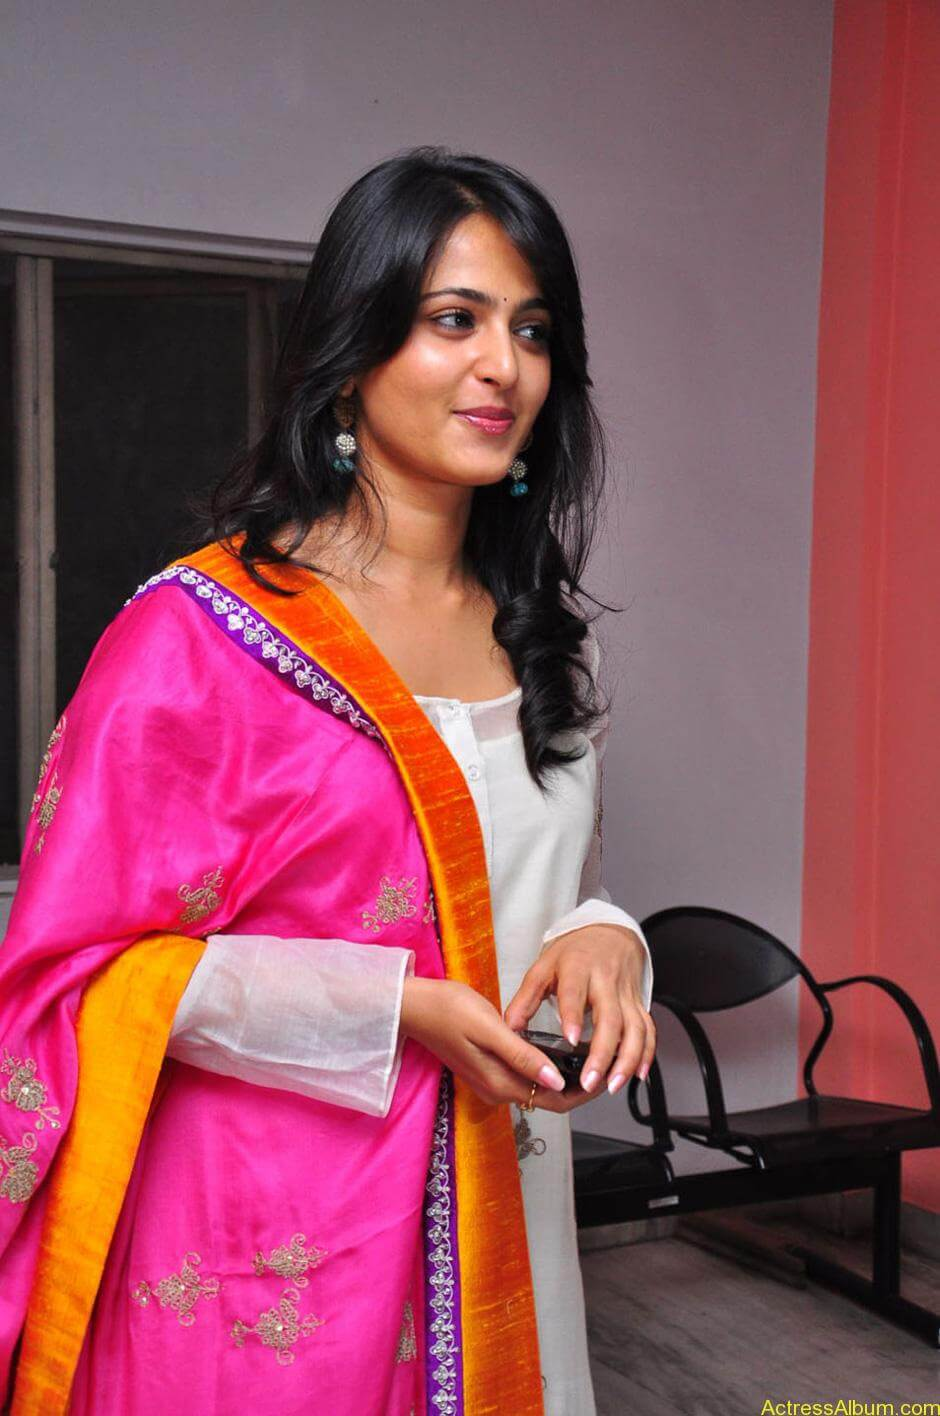 Anushka-Shetty-05-23-2011-Stills-002